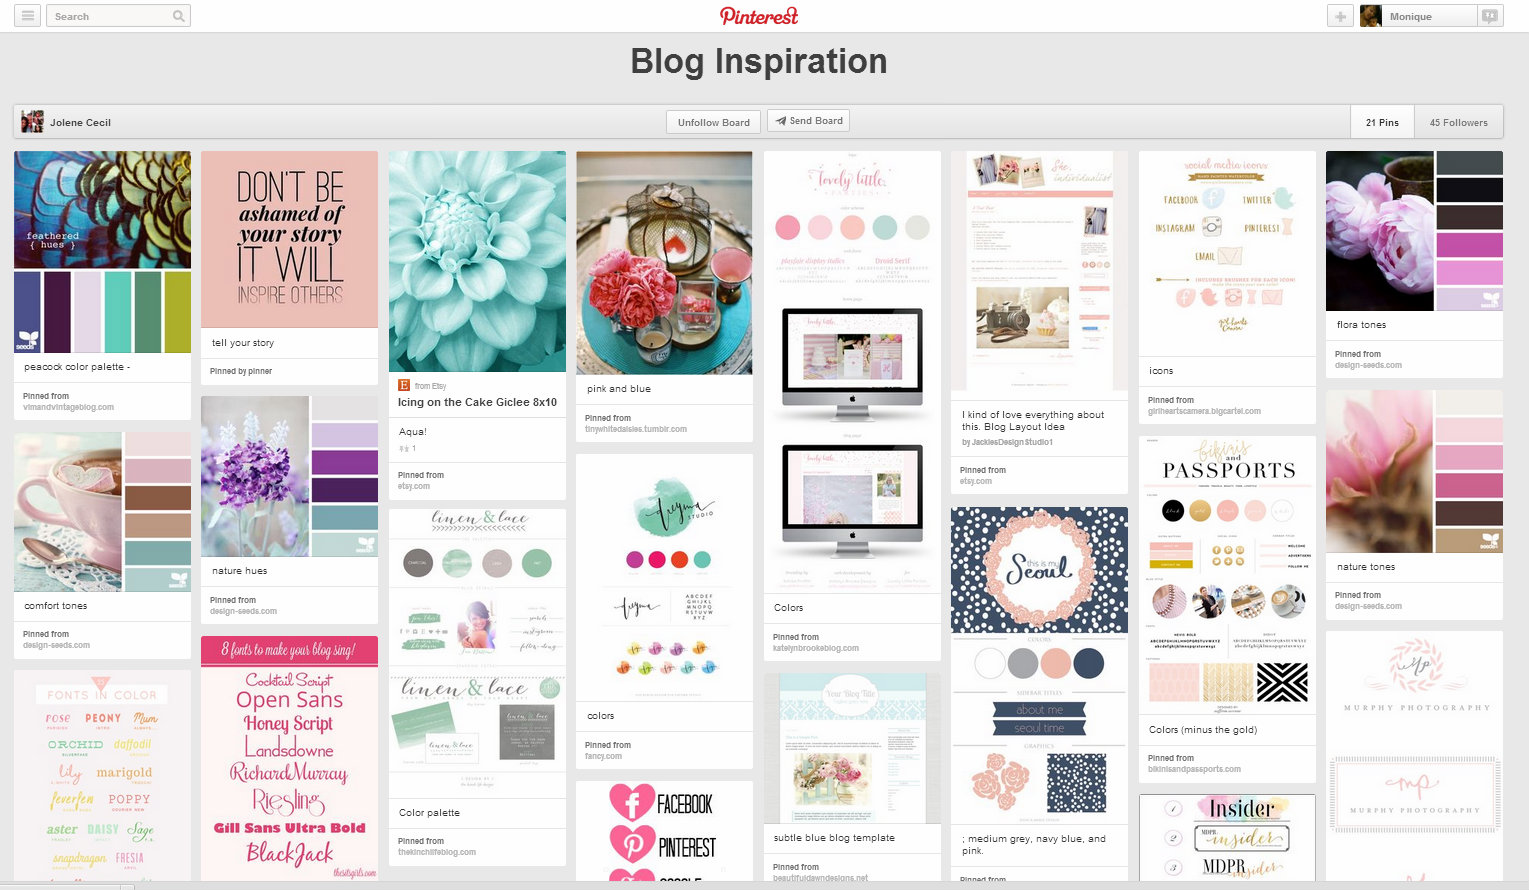 pinterest blog design inspiration board